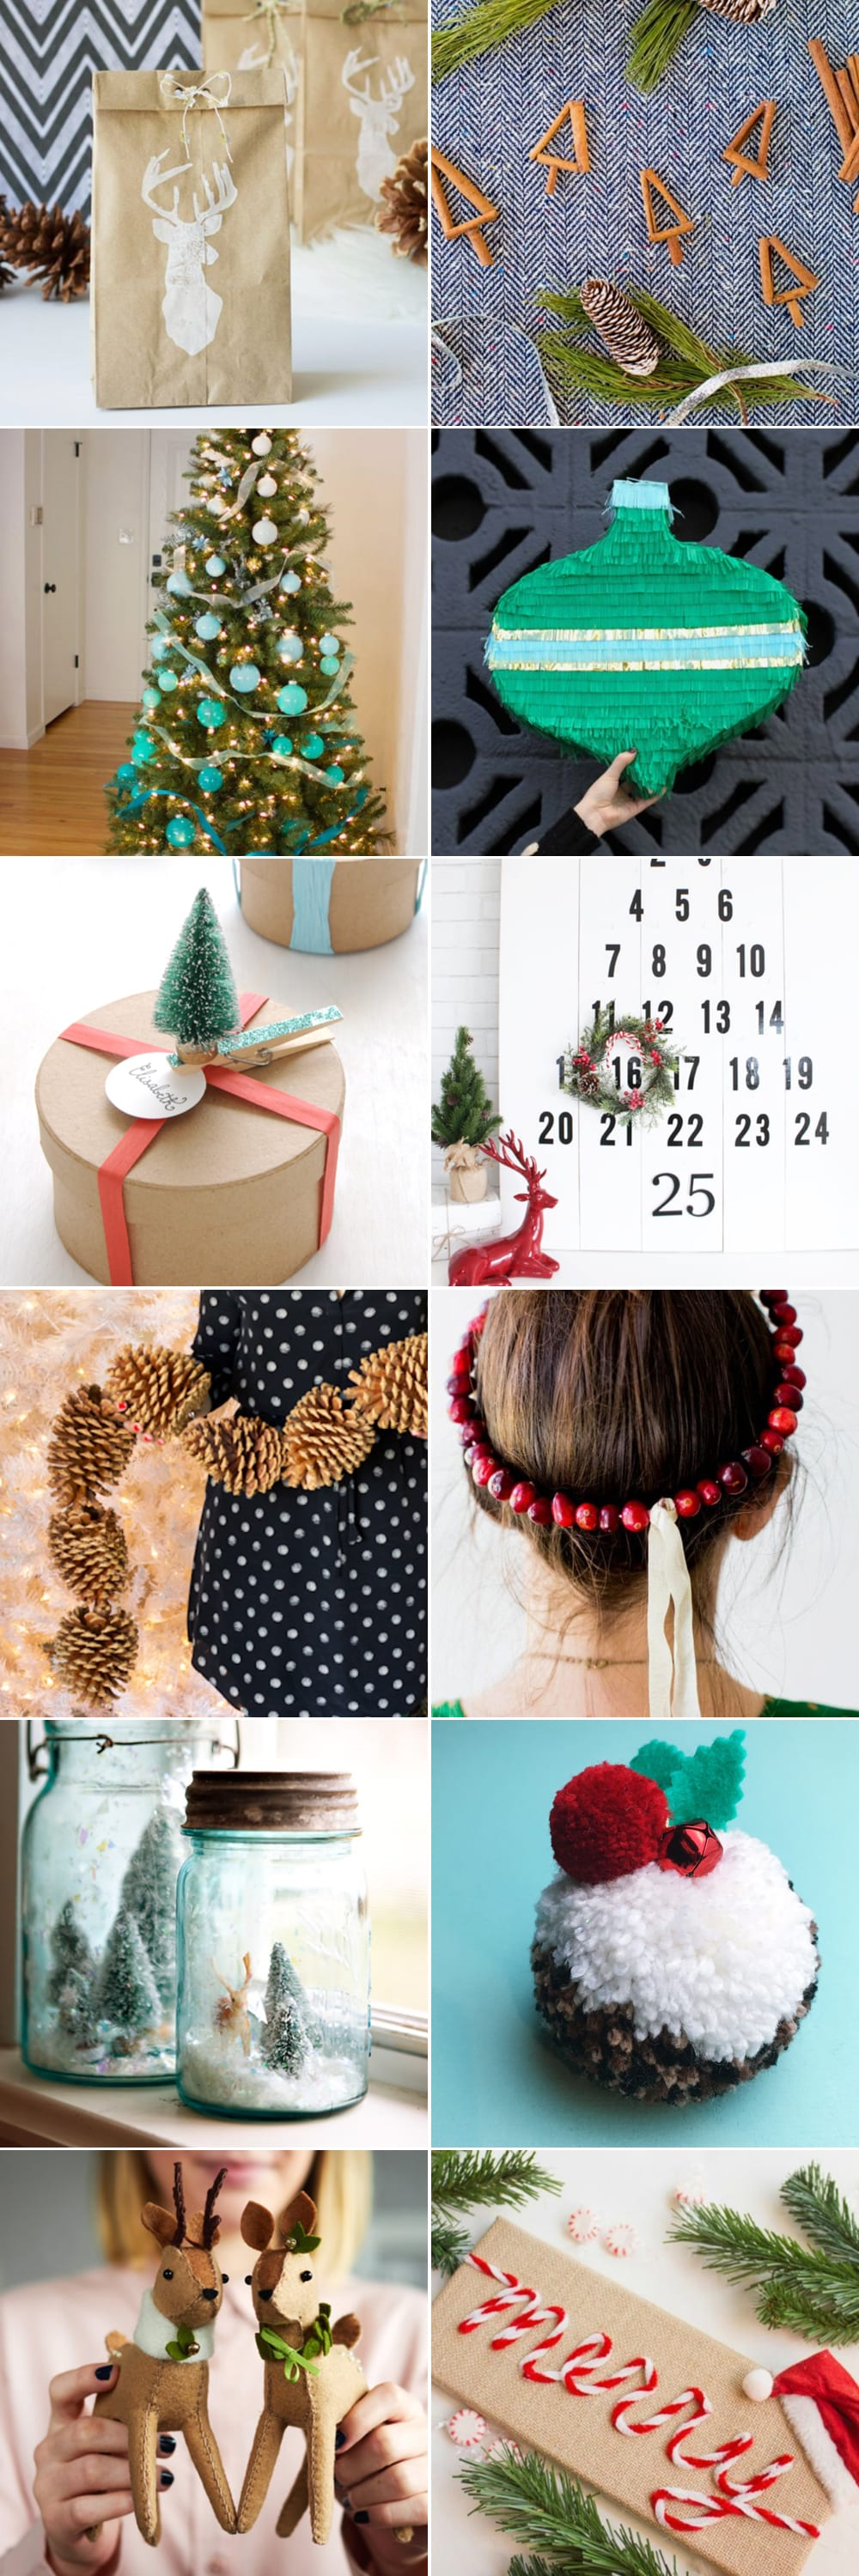 Twelve beautiful Christmas crafts to try